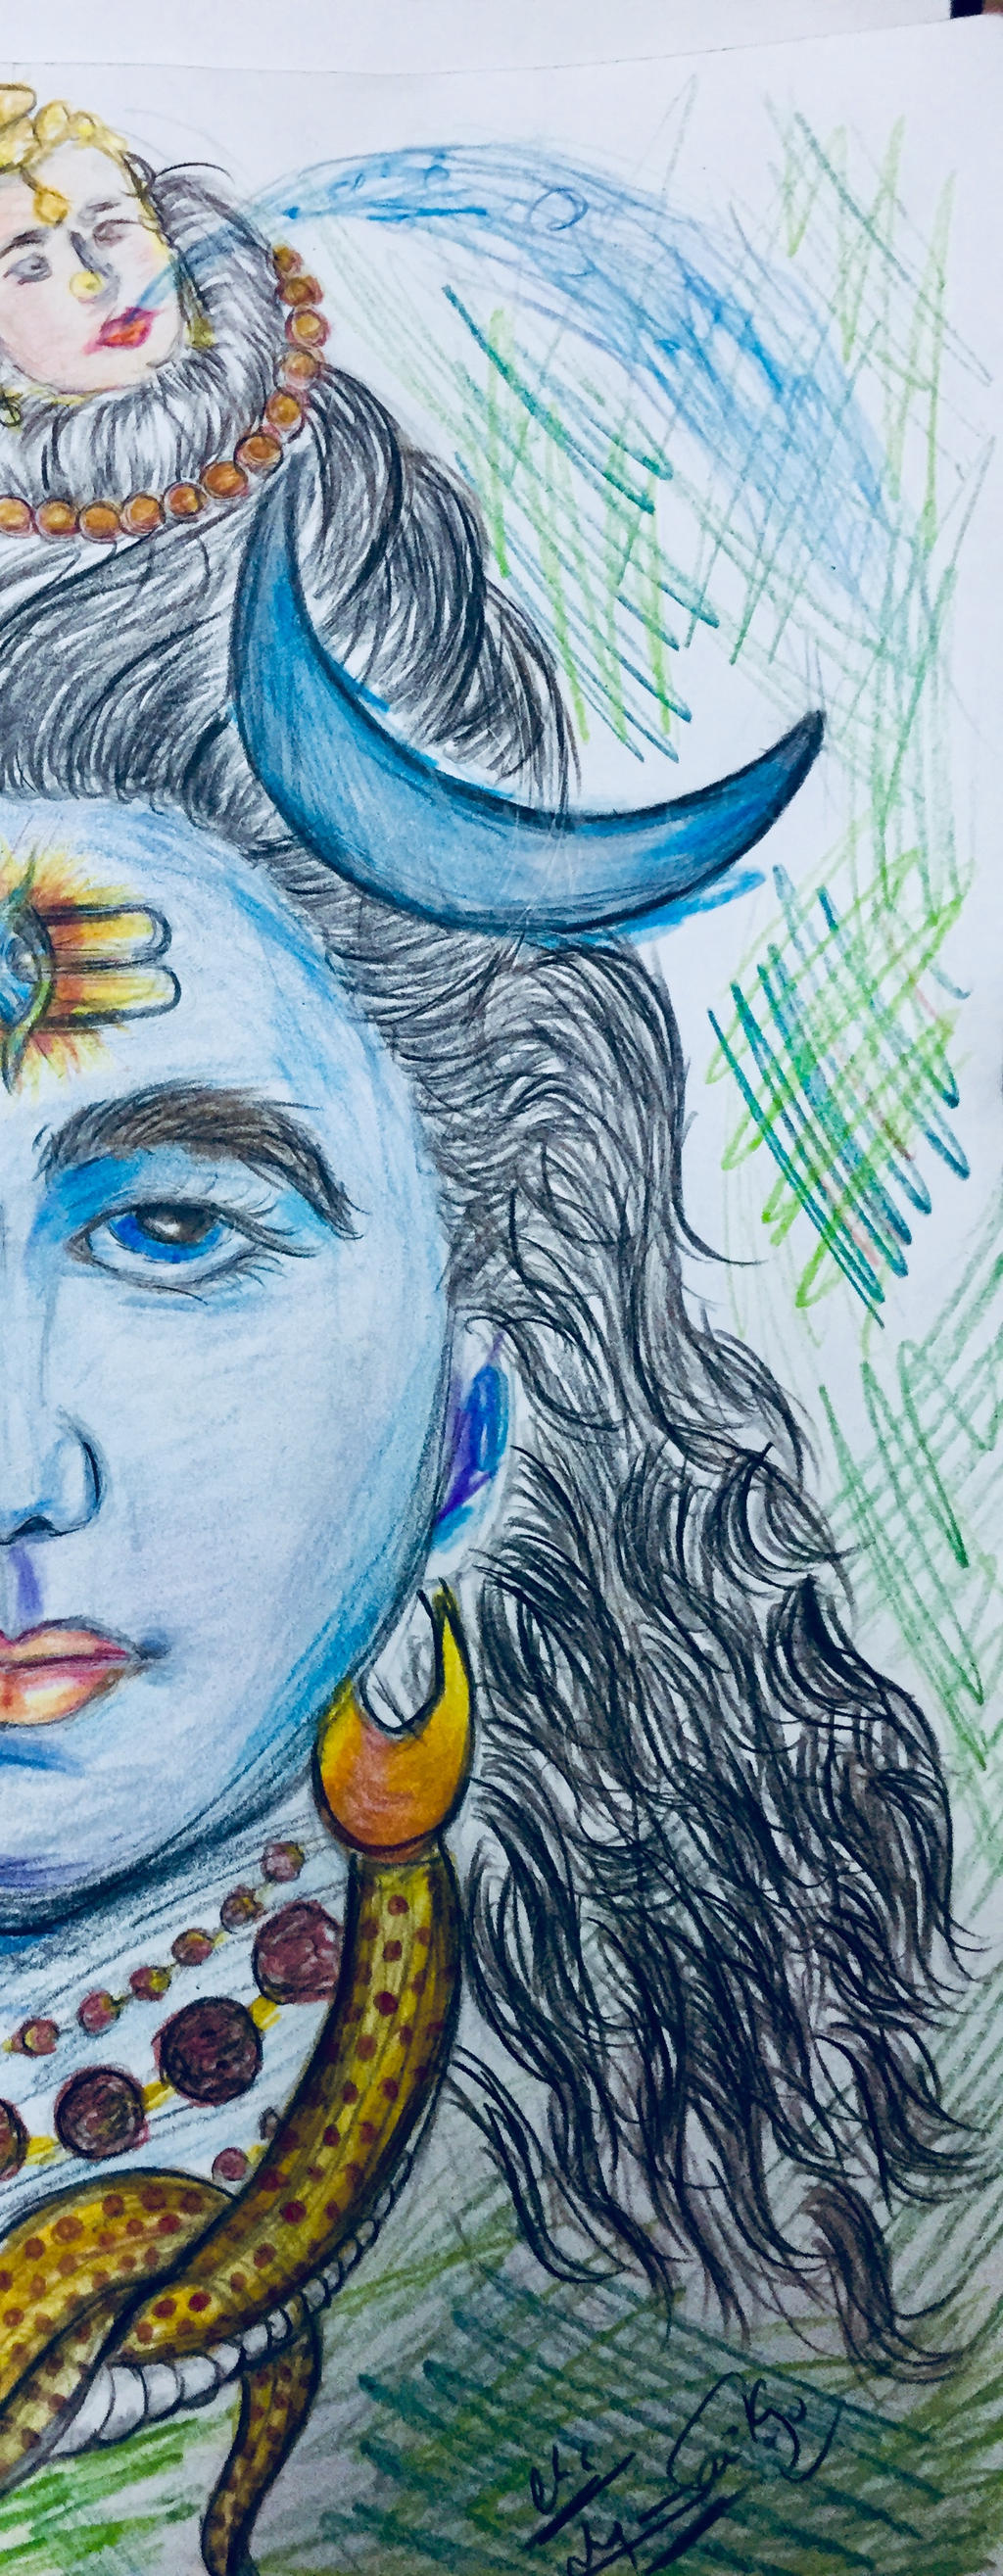 LORD SHIVA DRAWING by VNSNAGASAI on DeviantArt